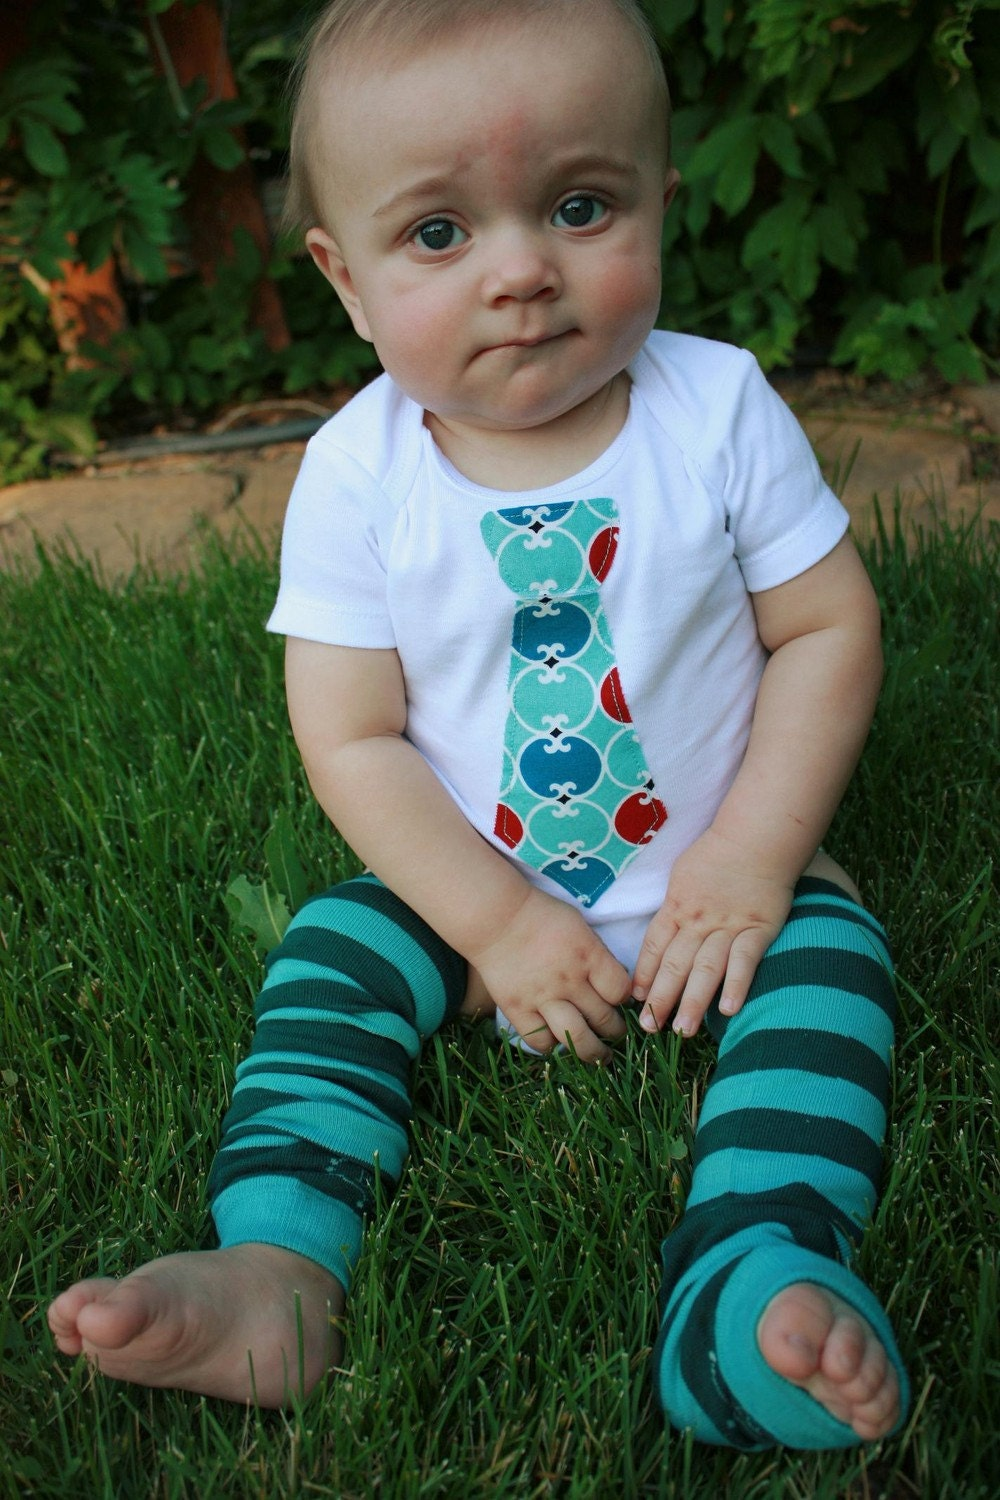 Sale-Tie applique onesie -Ready to ship- size 6 month